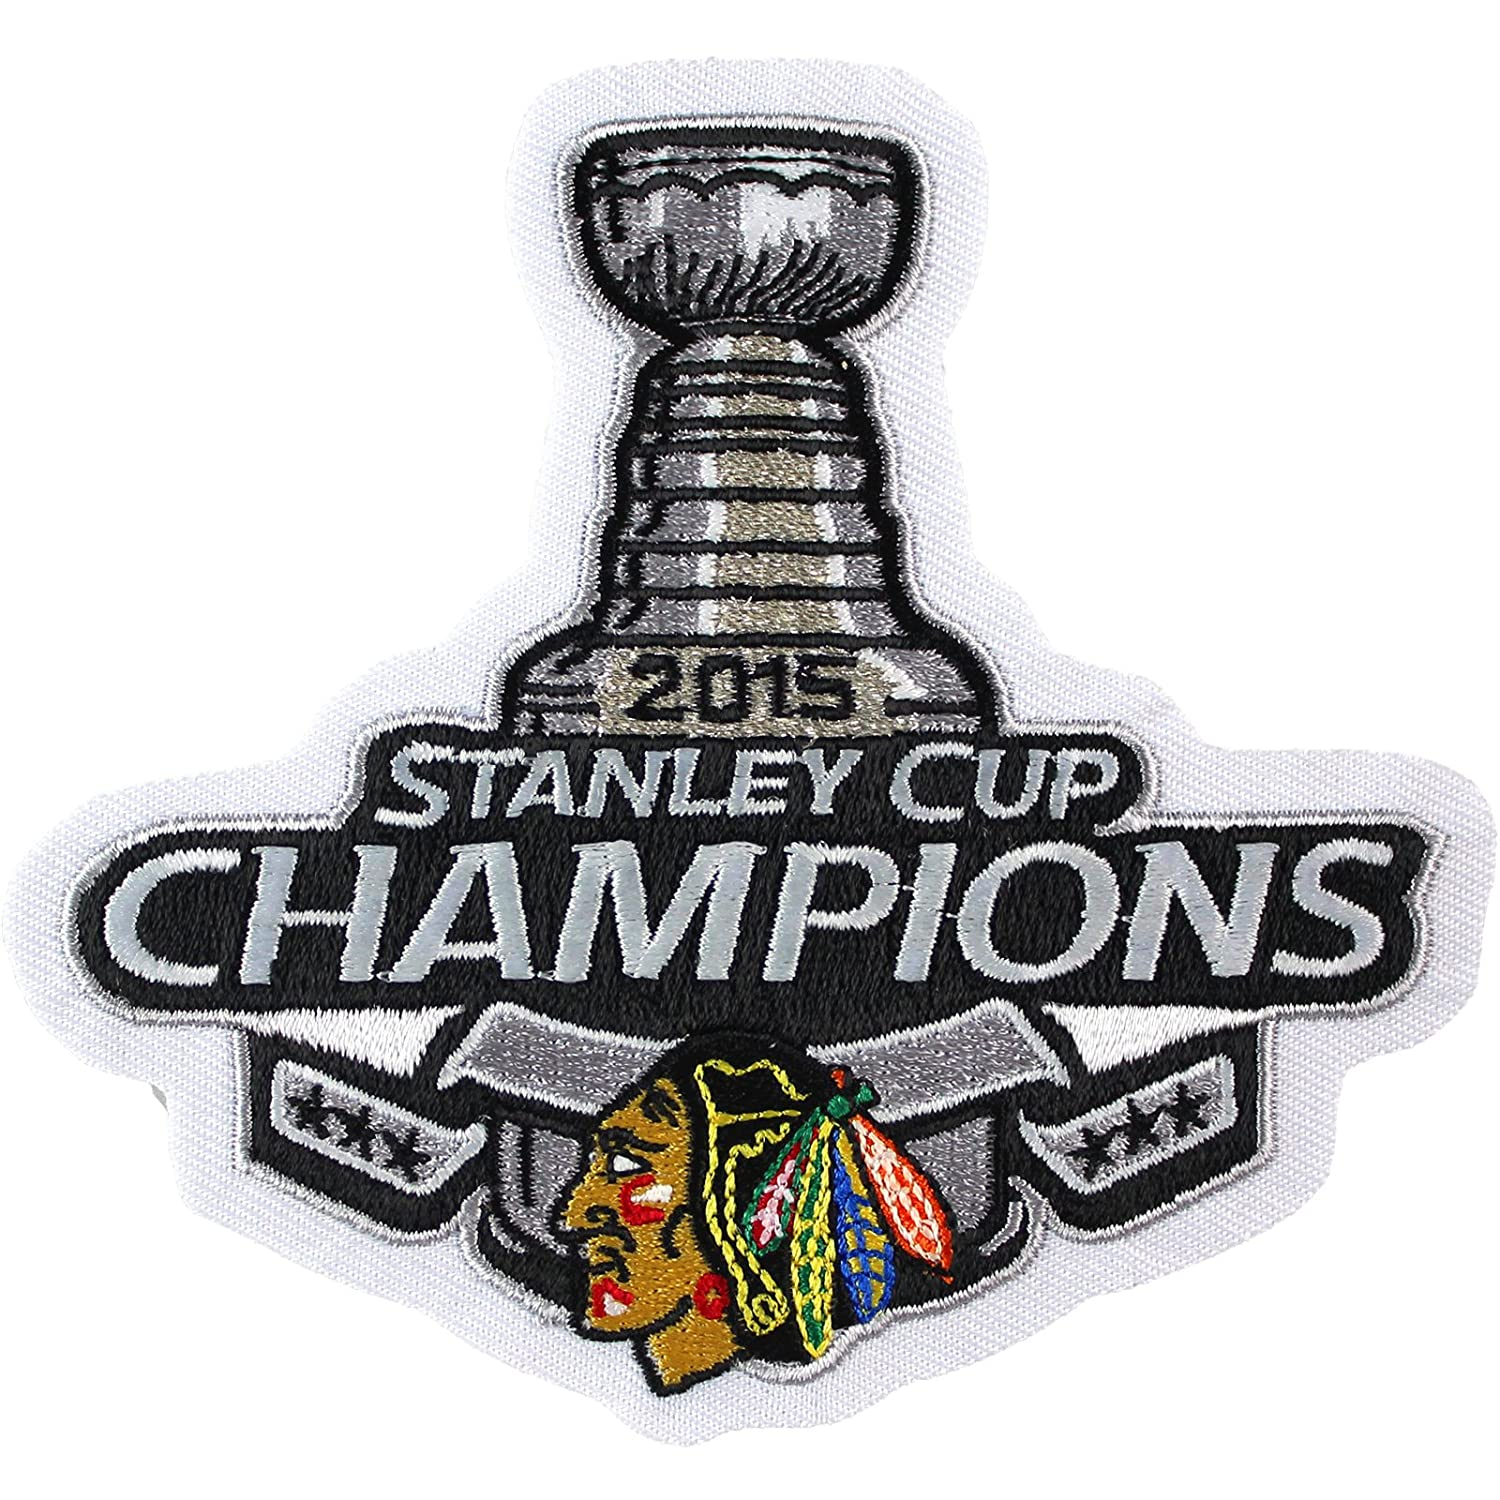 ... Amazon.com 2015 NHL Stanley Cup Final Champions Chicago Blackhawks  Jersey Commemorative Patch Sports Outdoors ... 4c6187853